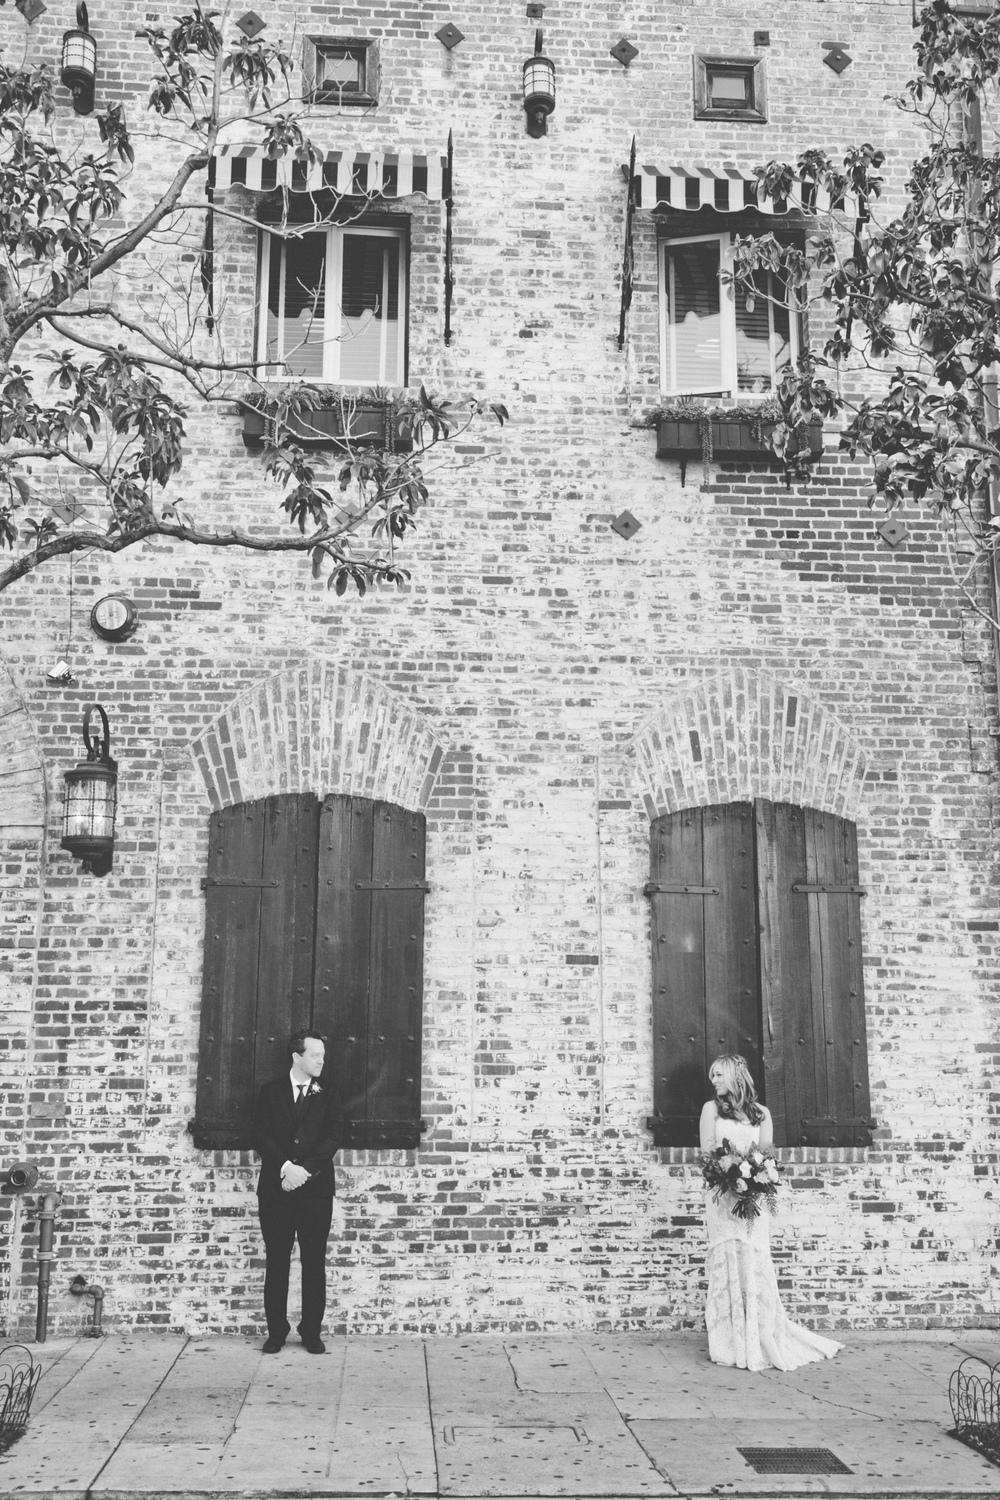 014 bride + brick bw.JPG